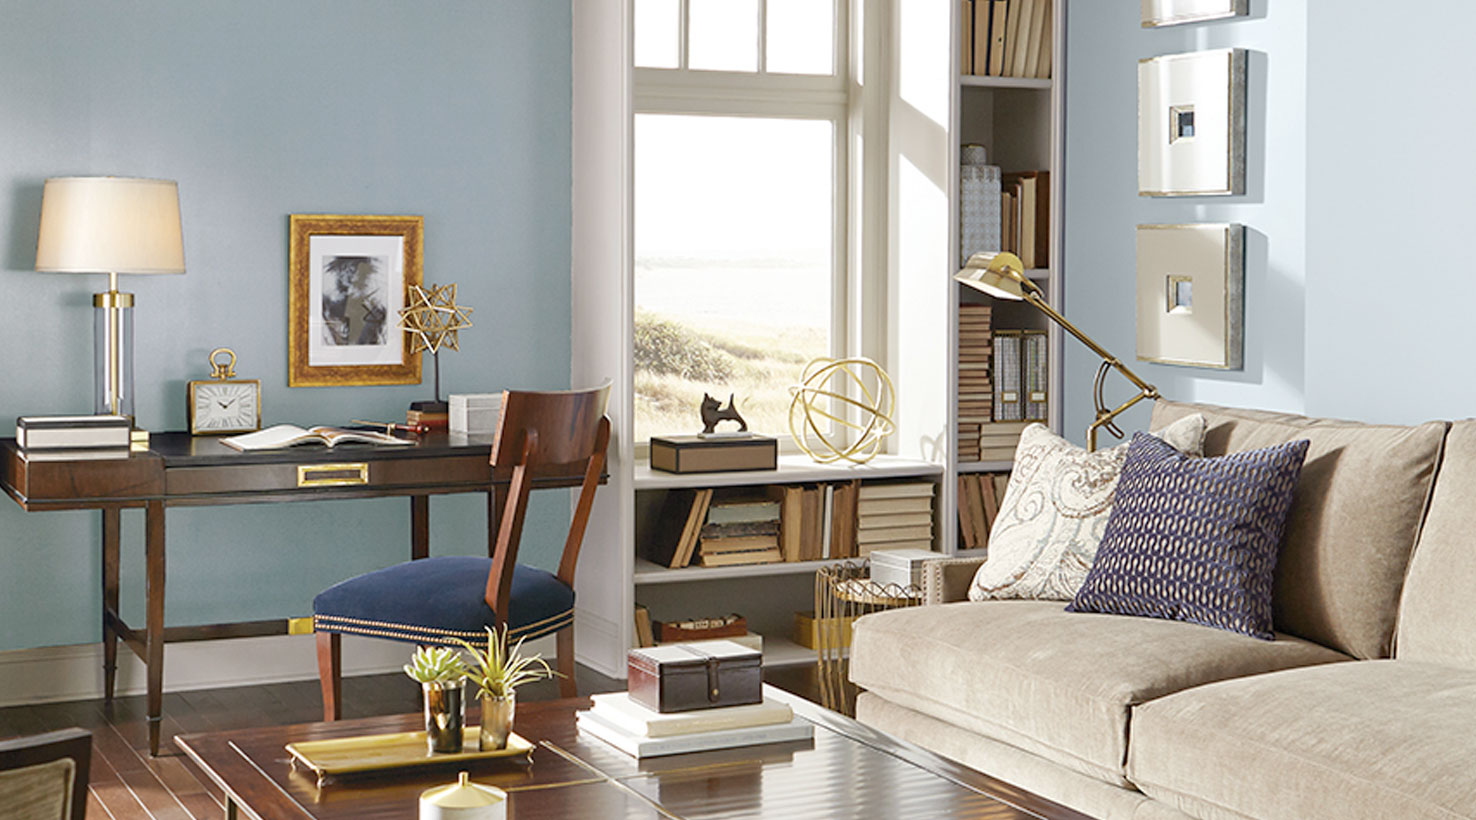 living room paint color ideas inspiration gallery on best neutral paint colors for living room sherwin williams living room id=56283